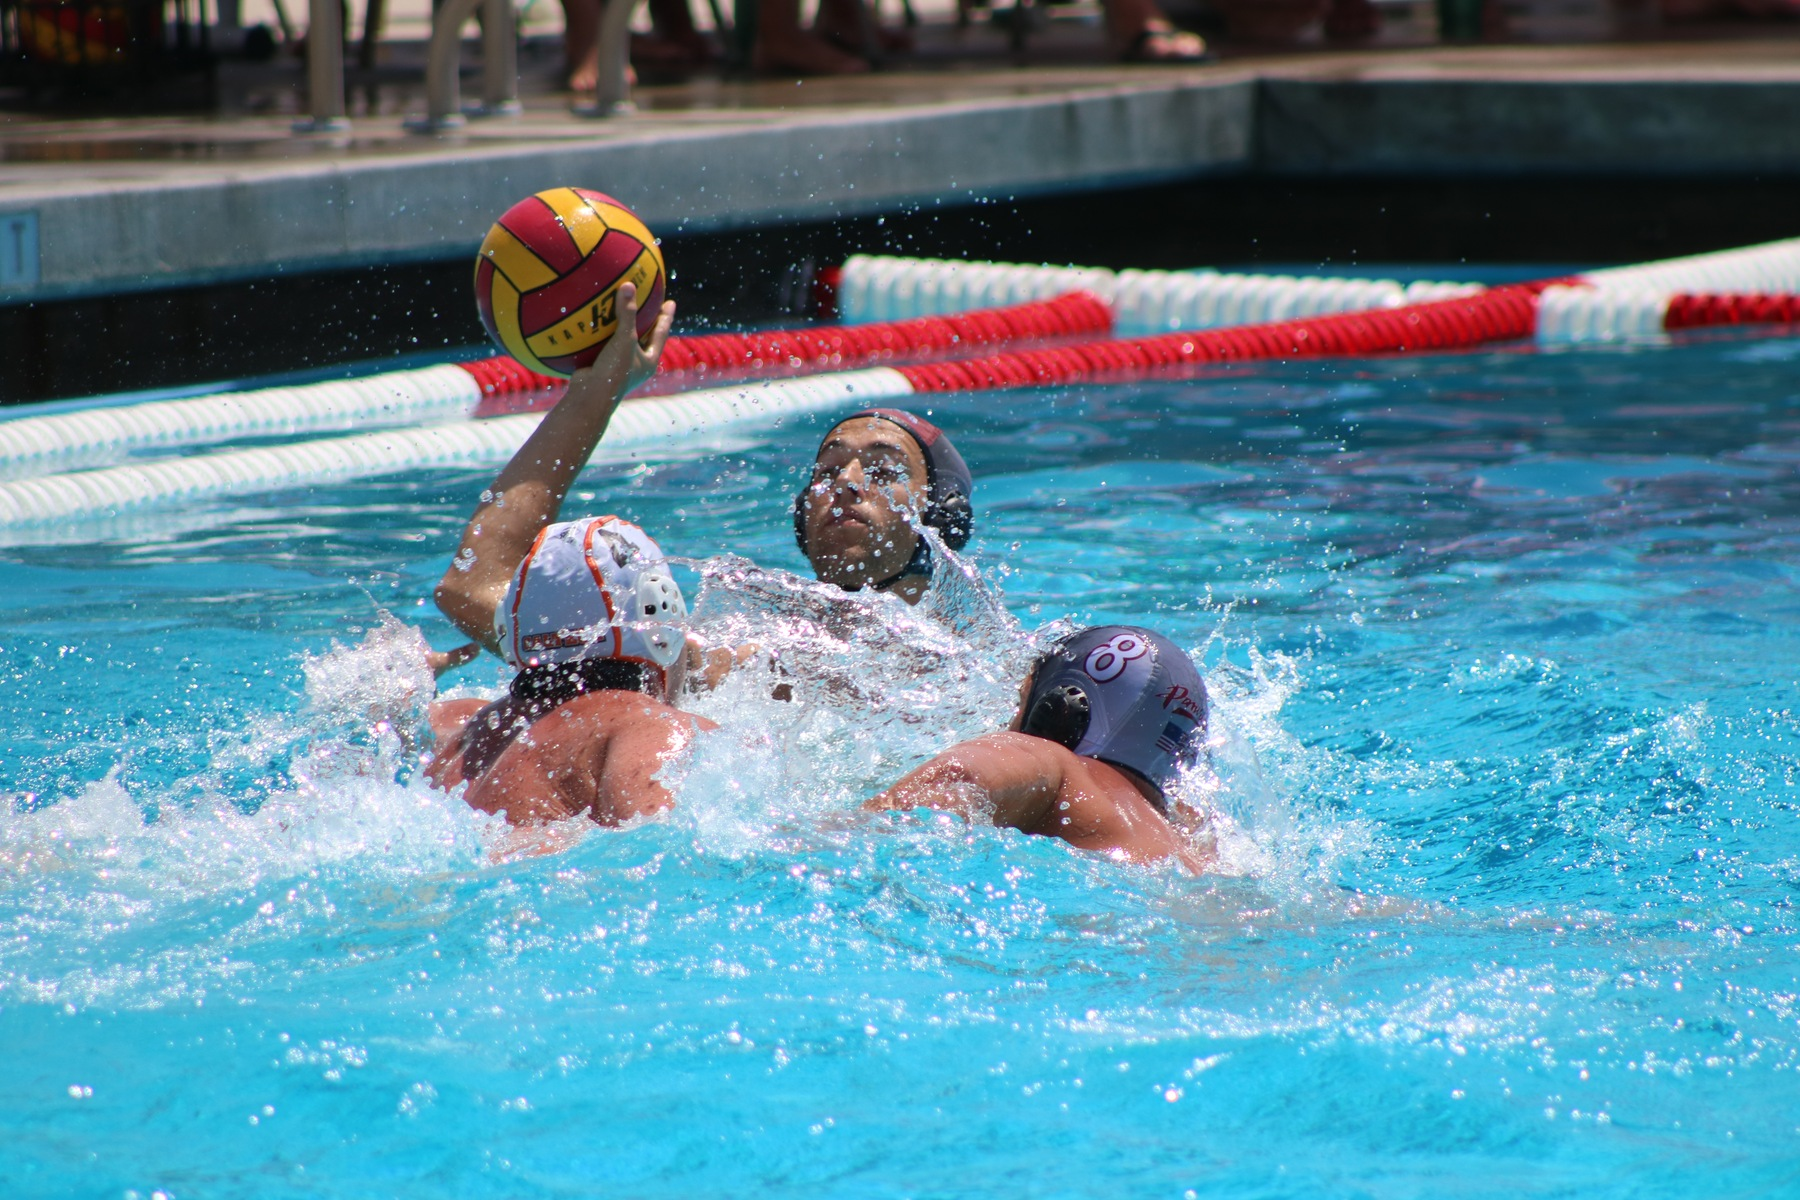 Men's water polo player going for a shot